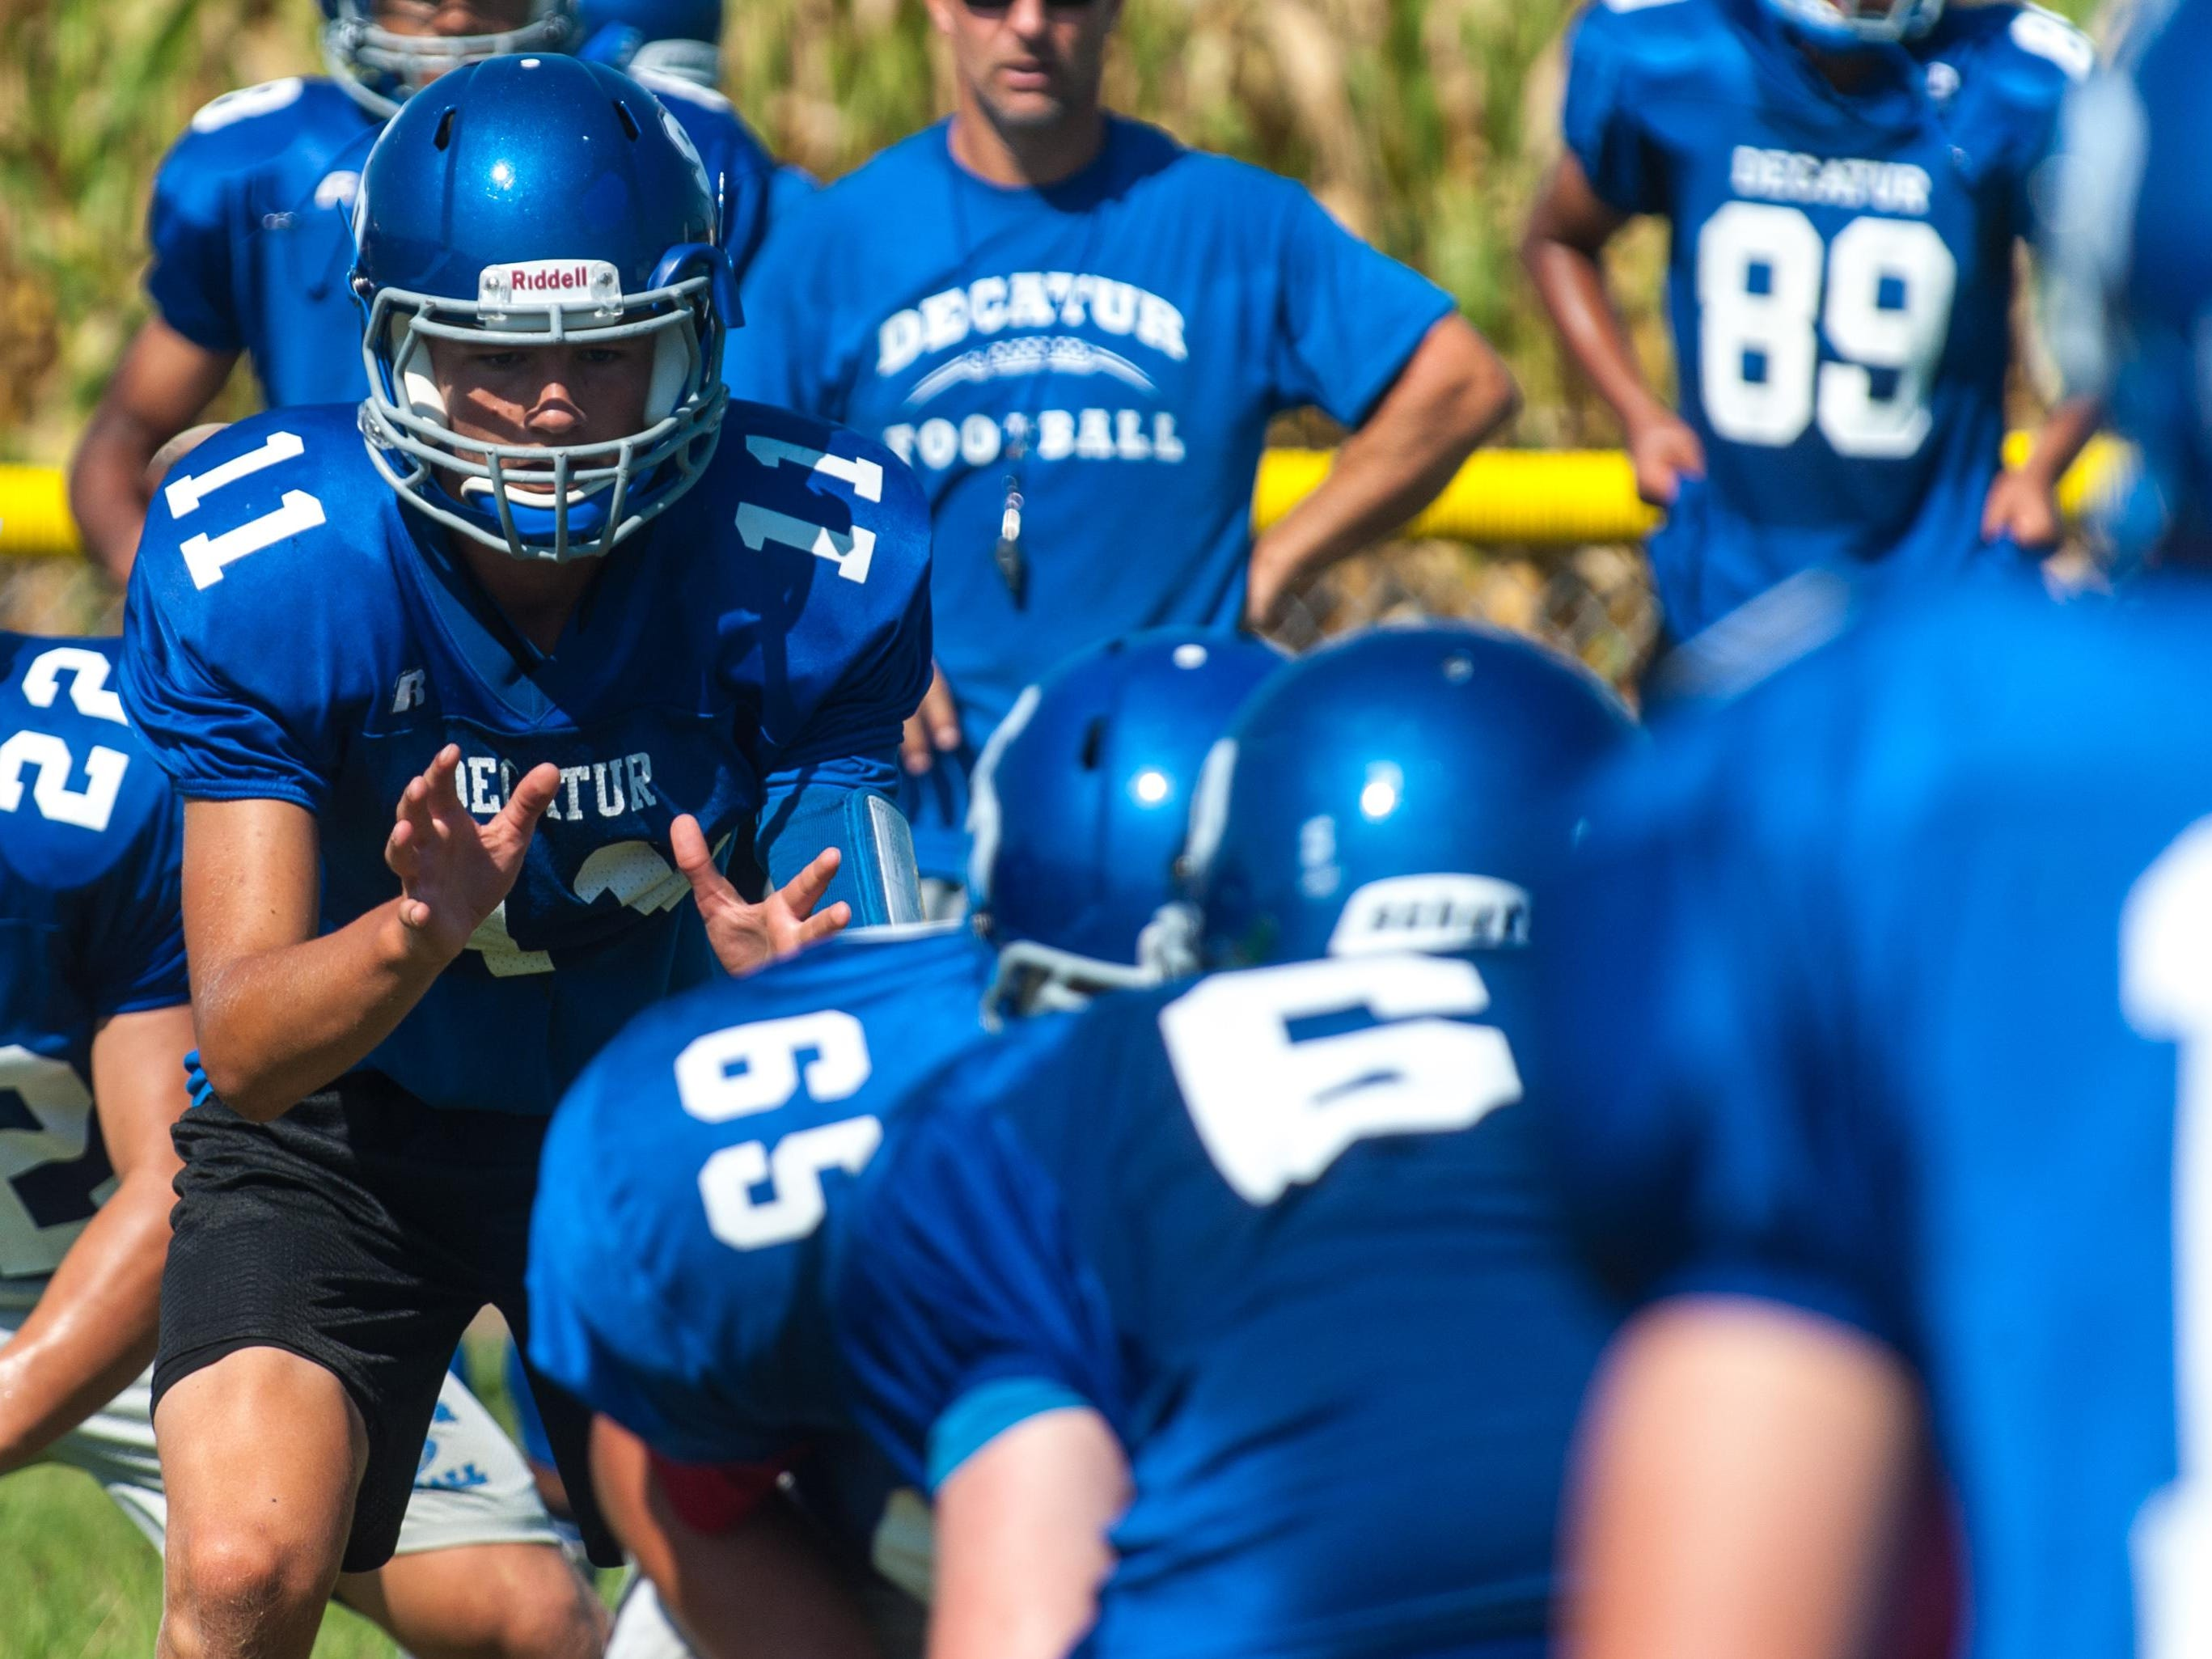 Stephen Decatur players work through offensive plays during a recent practice at the school in Berlin.